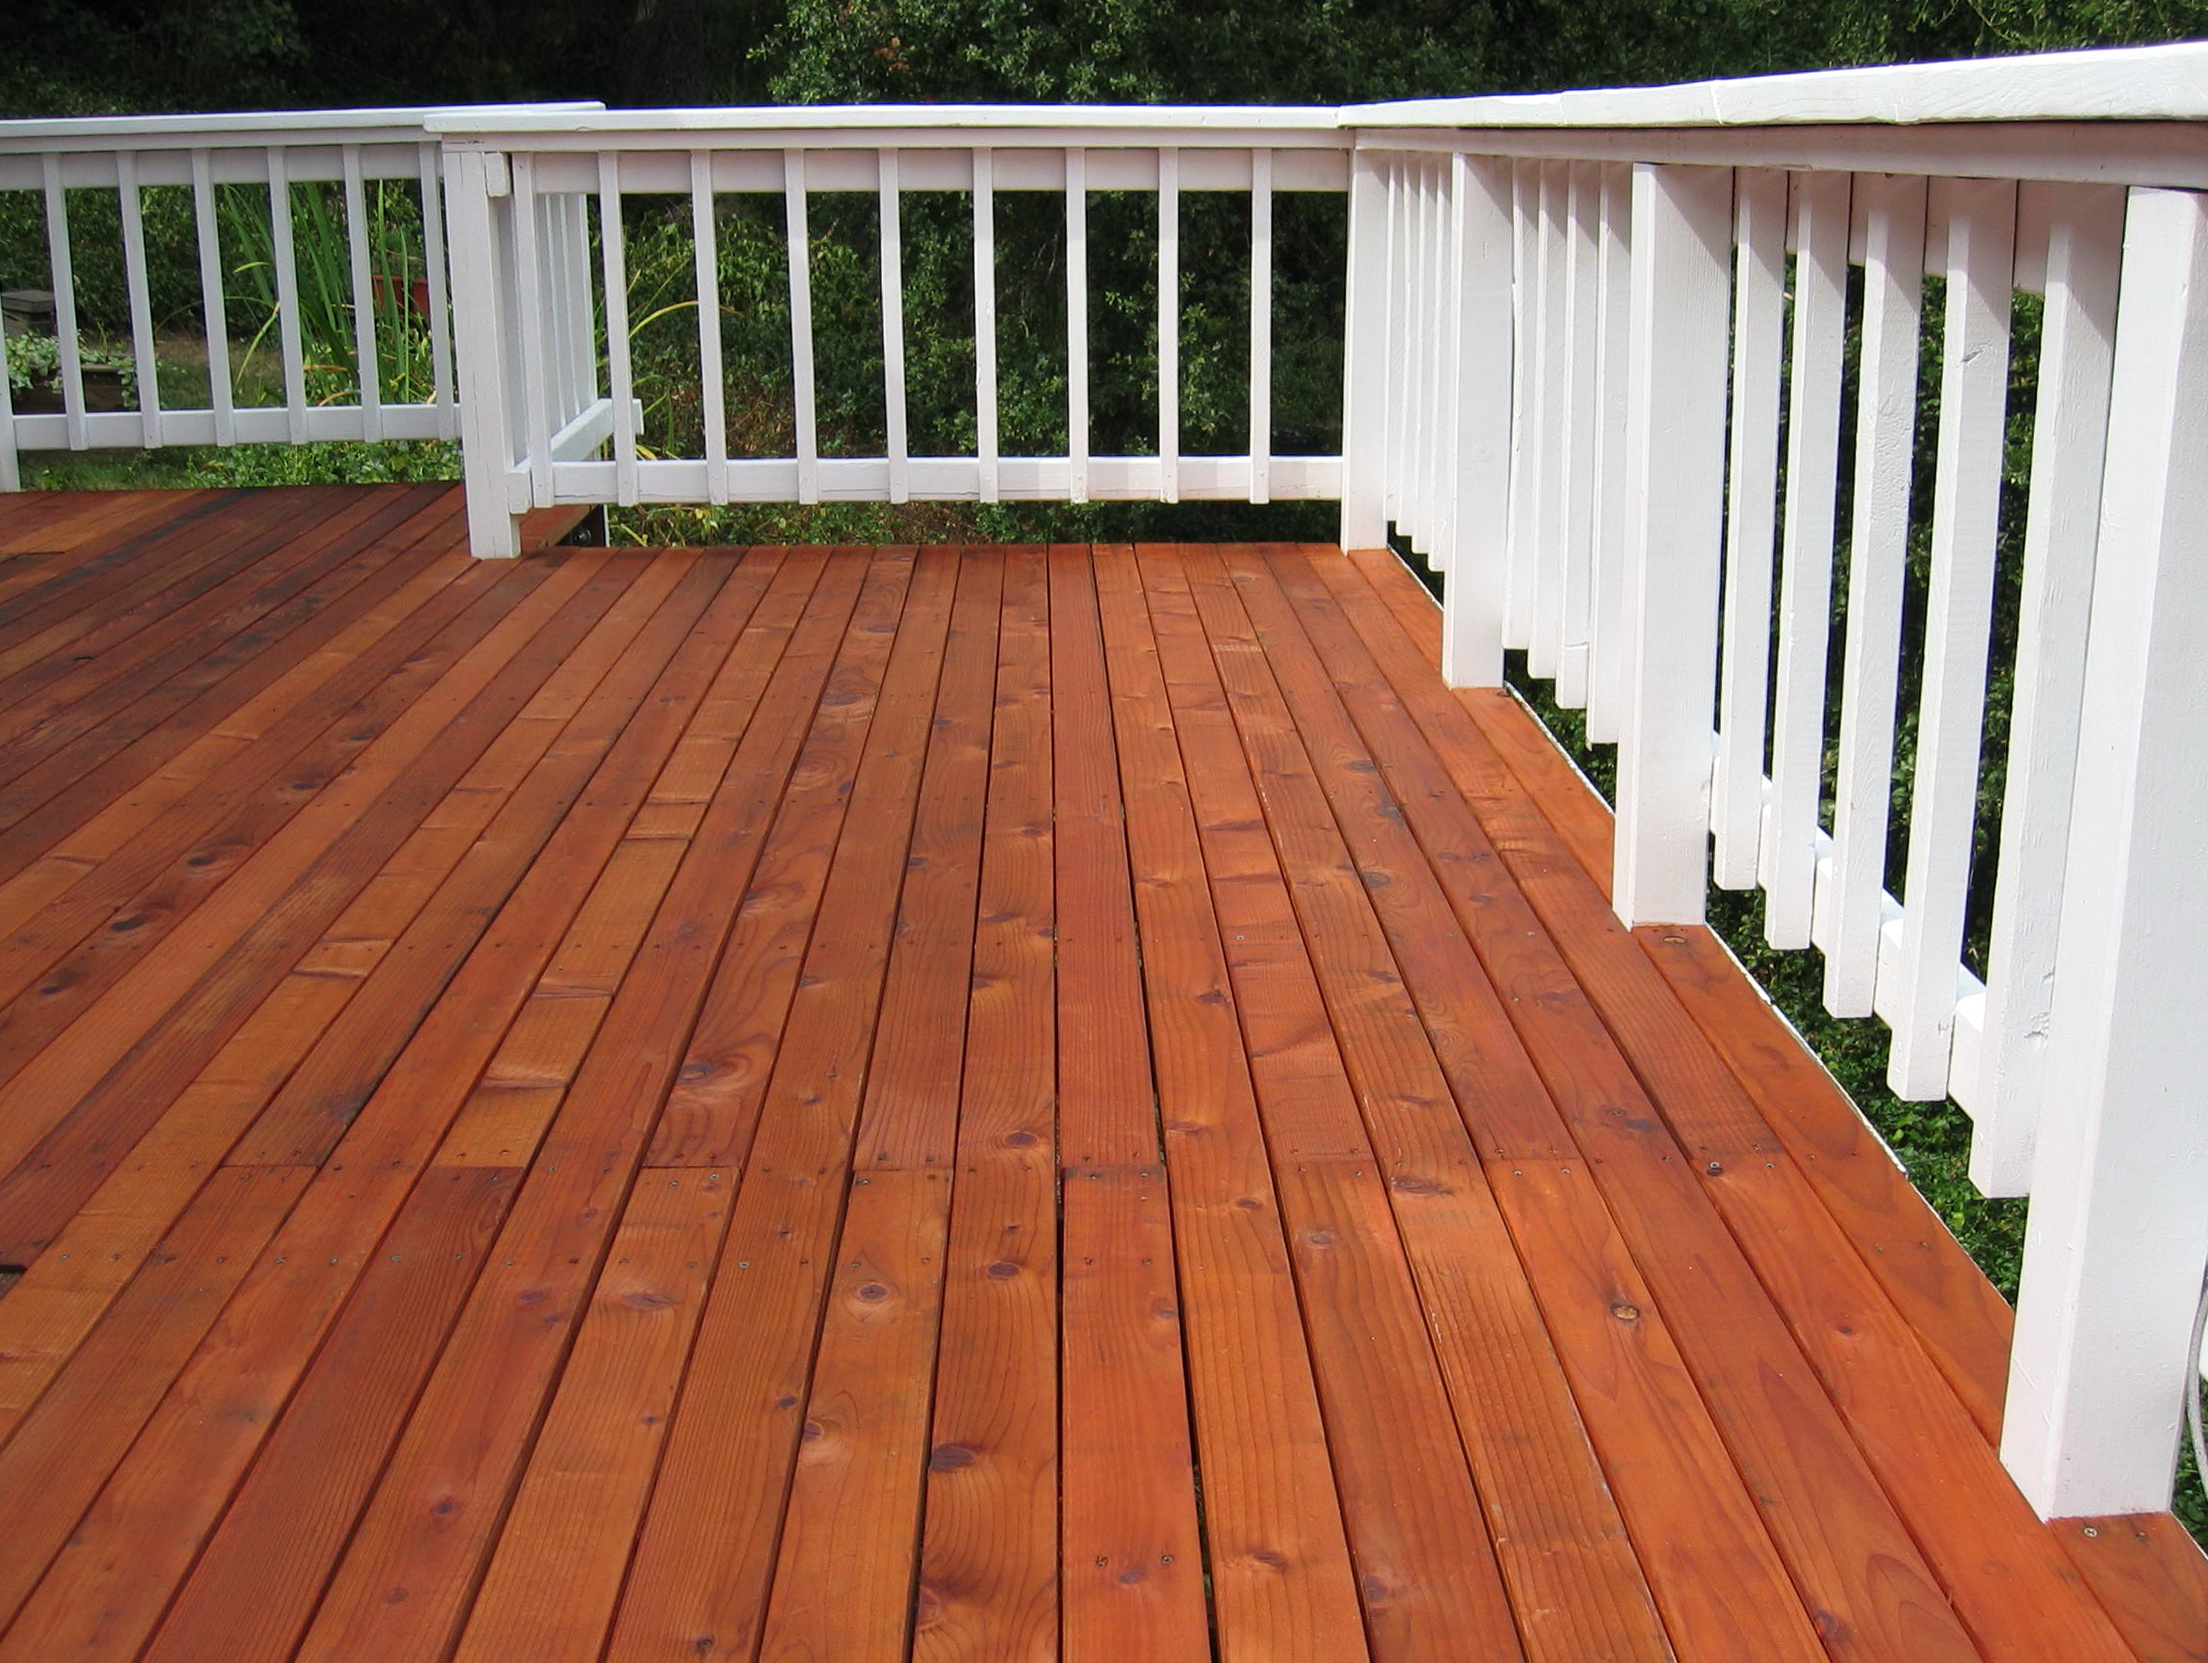 Cool deck paint home depot home design ideas for Deck paint colors home depot